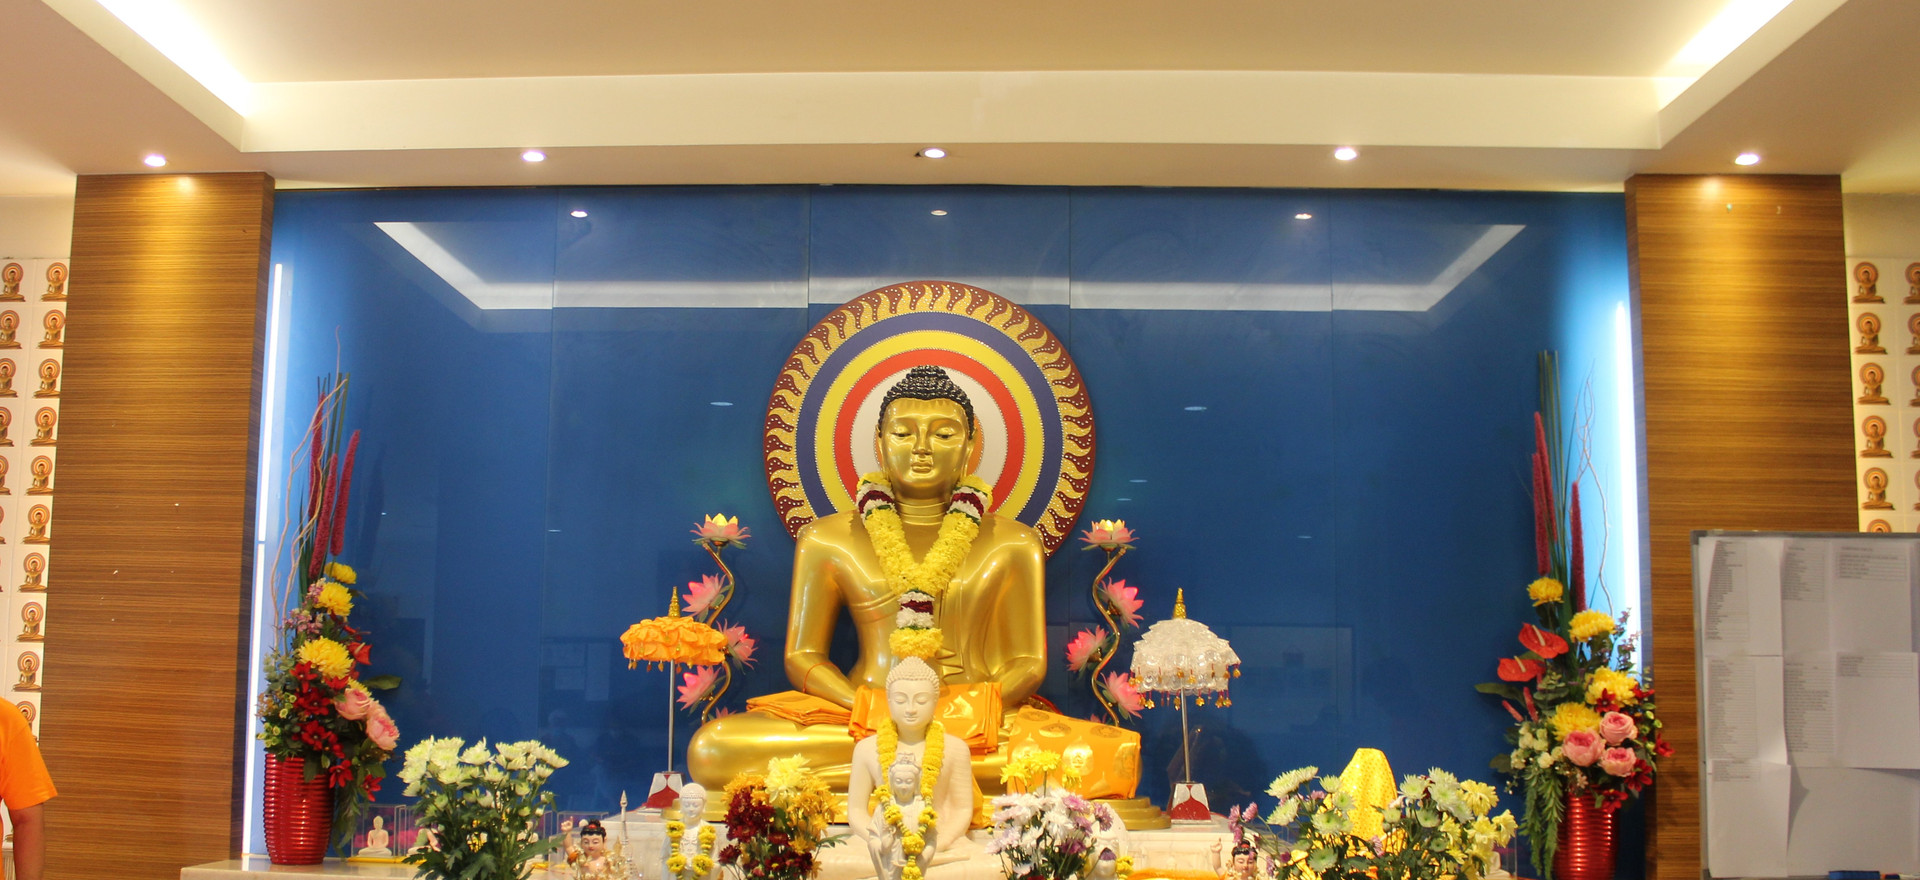 Tatagatha Hall (Buddha Hall)